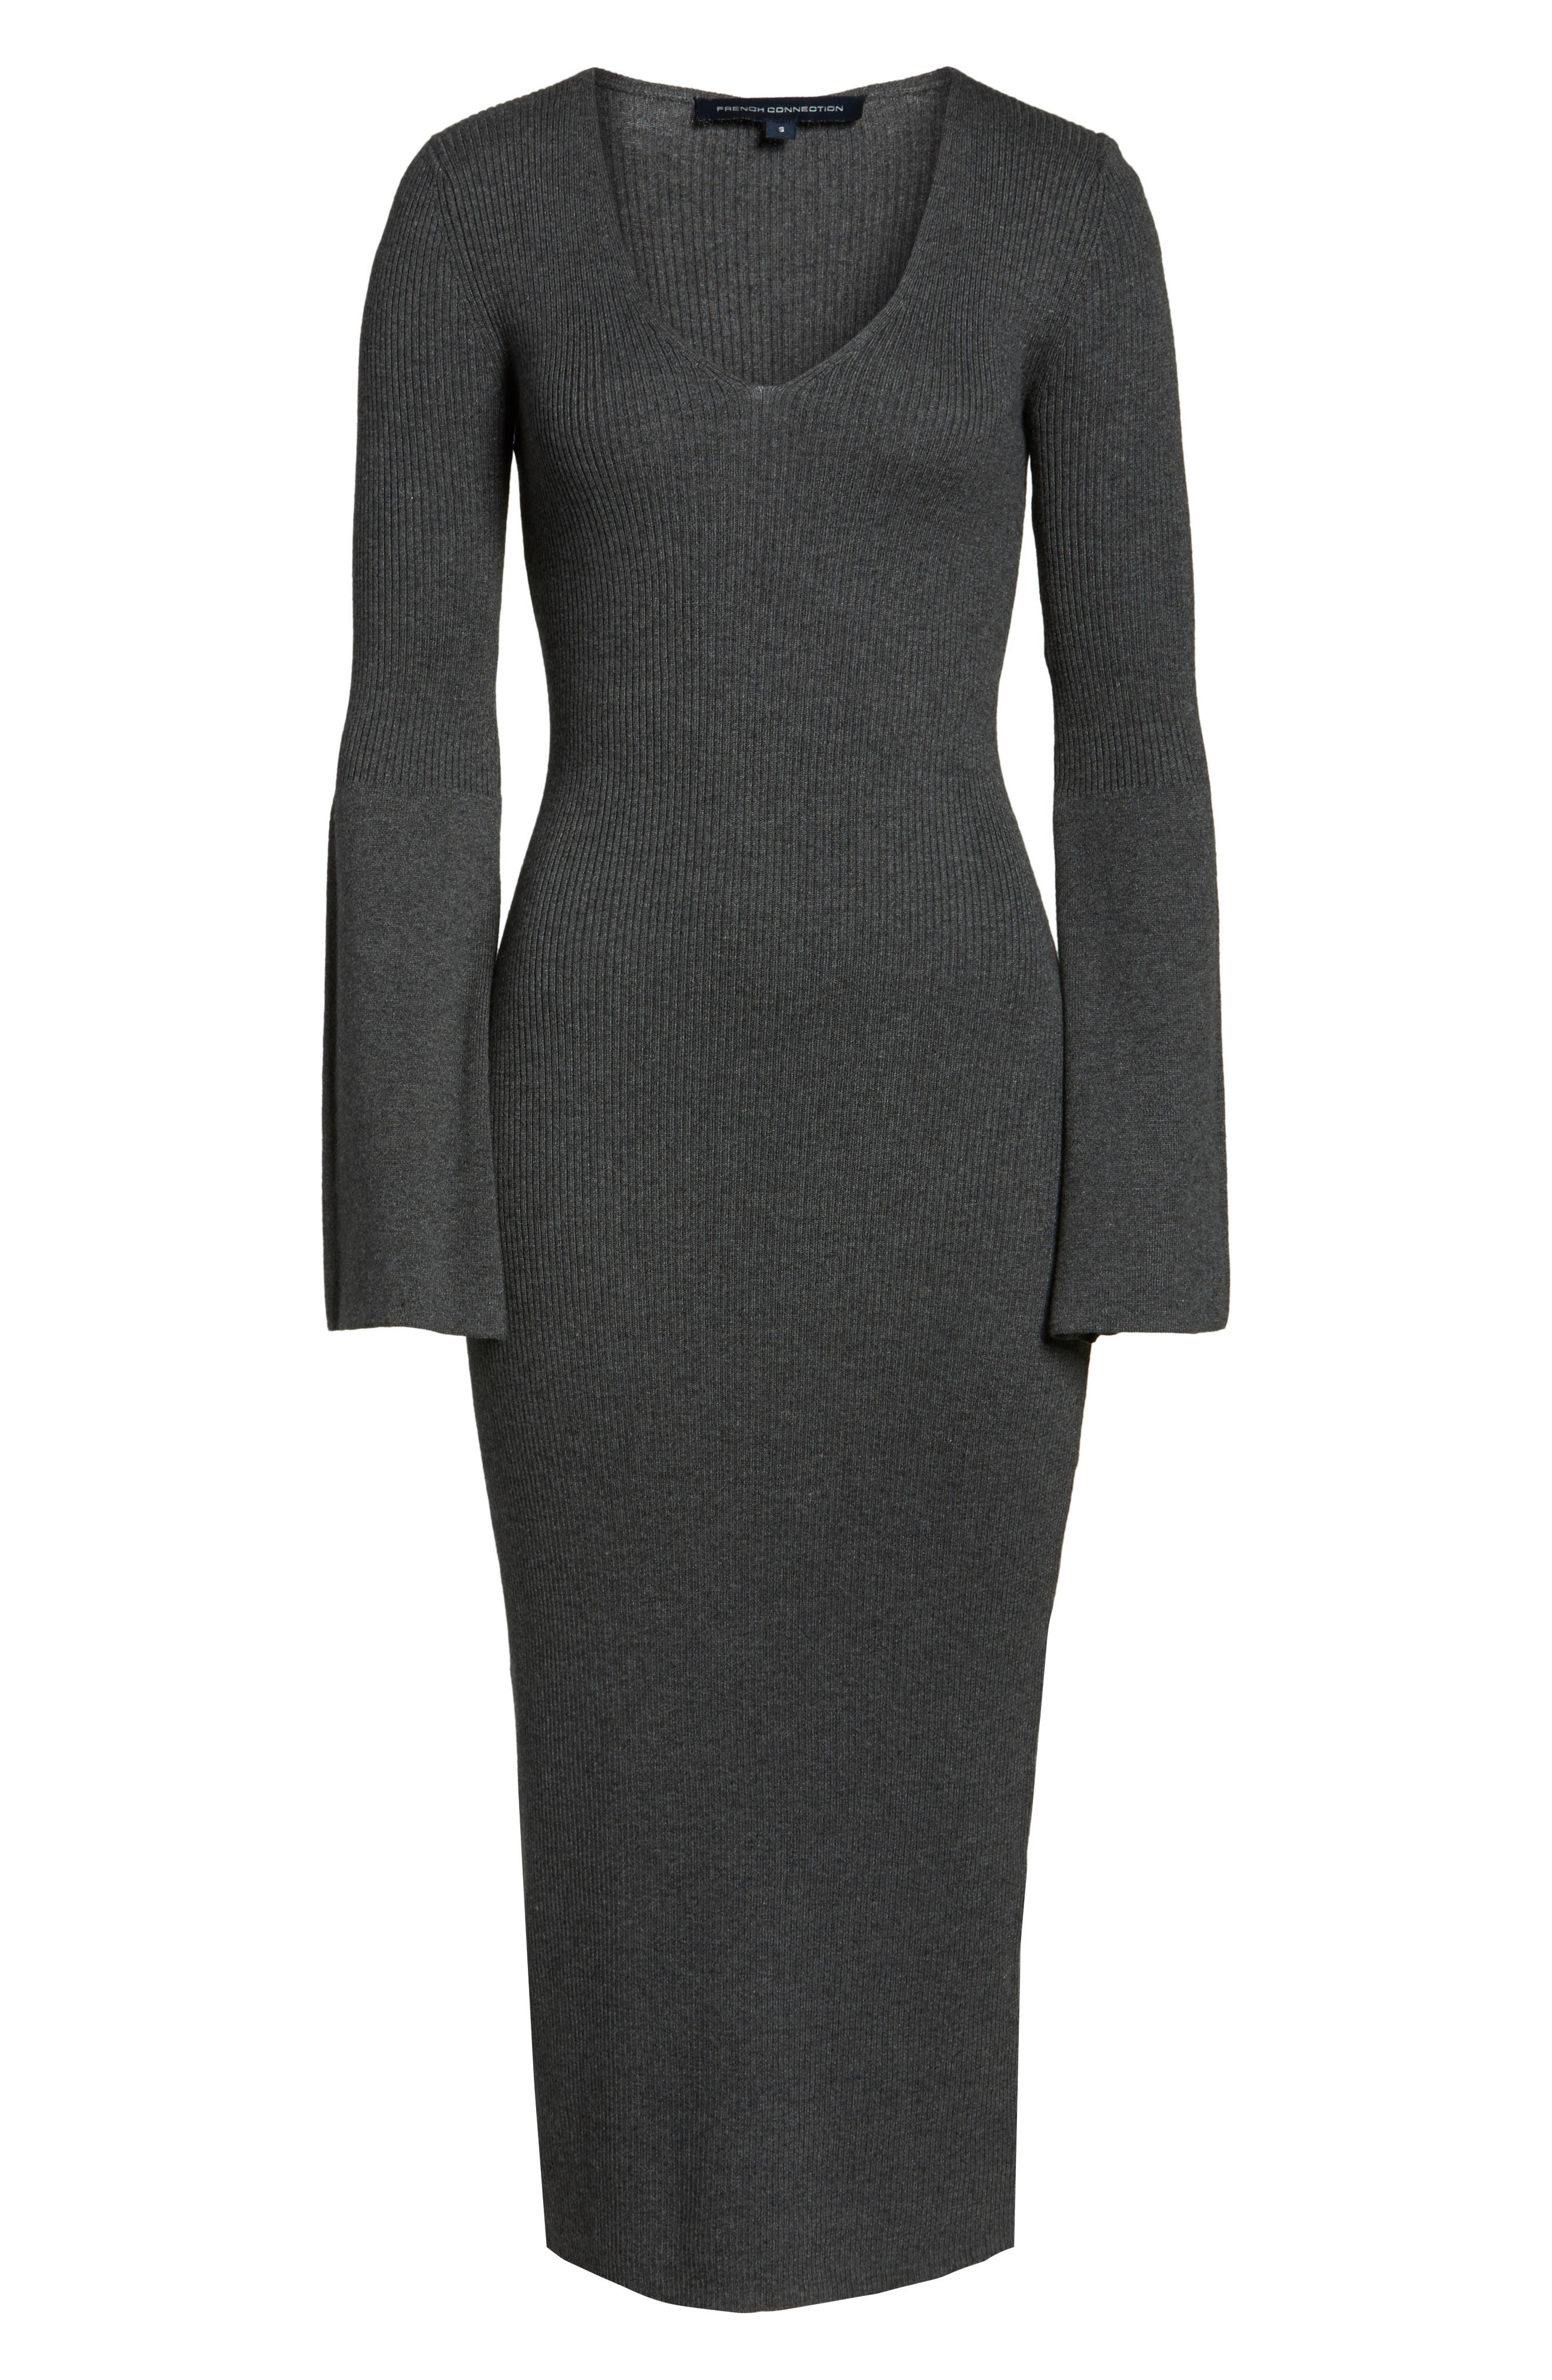 Virgie Knits Midi Dress,                             Alternate thumbnail 7, color,                             Charcoal